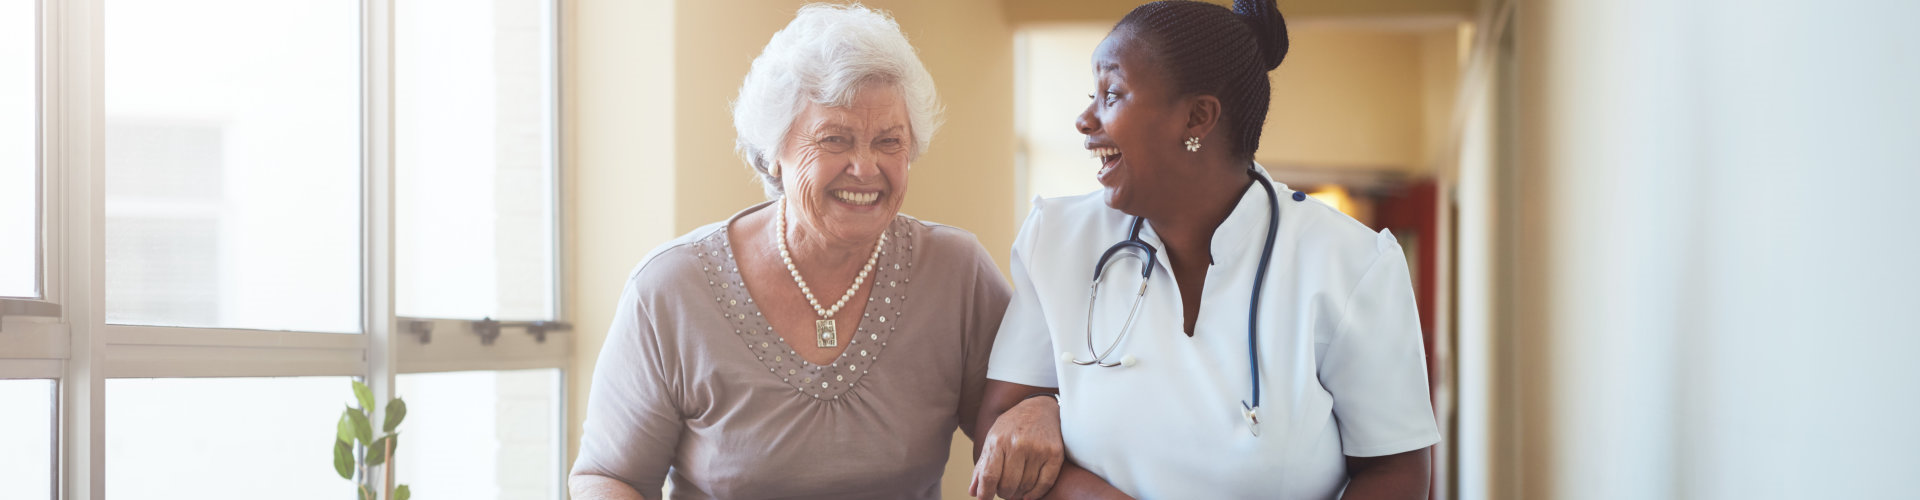 caregiver and old woman having a good time